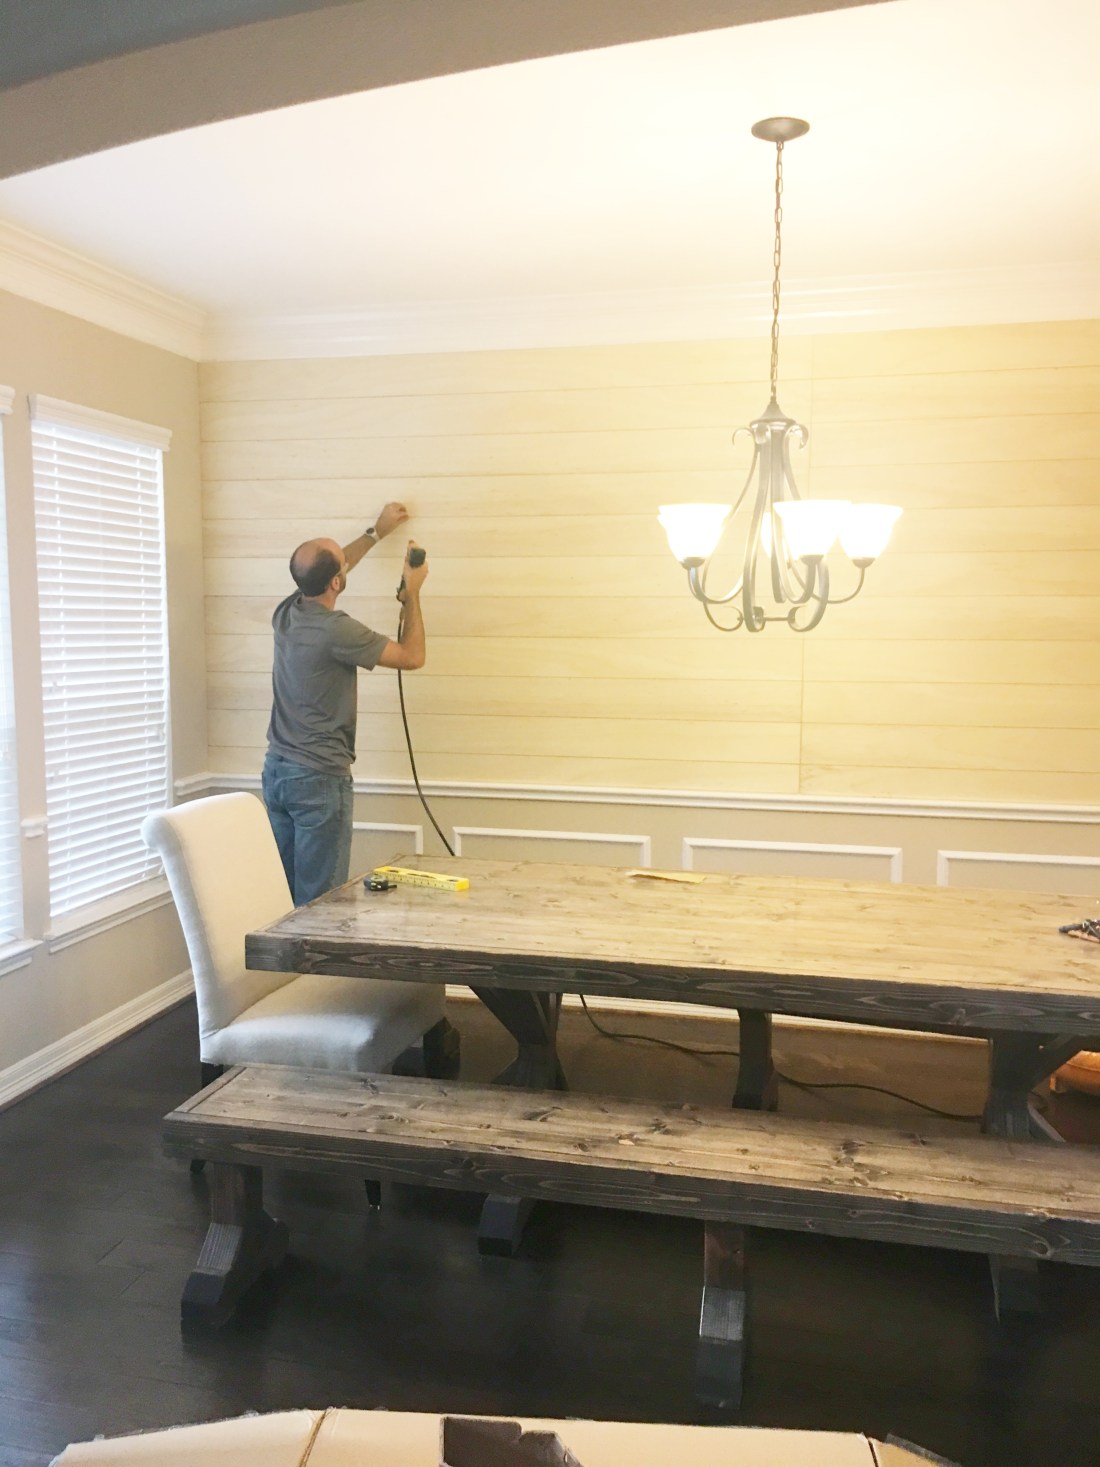 How to Shiplap a Wall without Shiplap